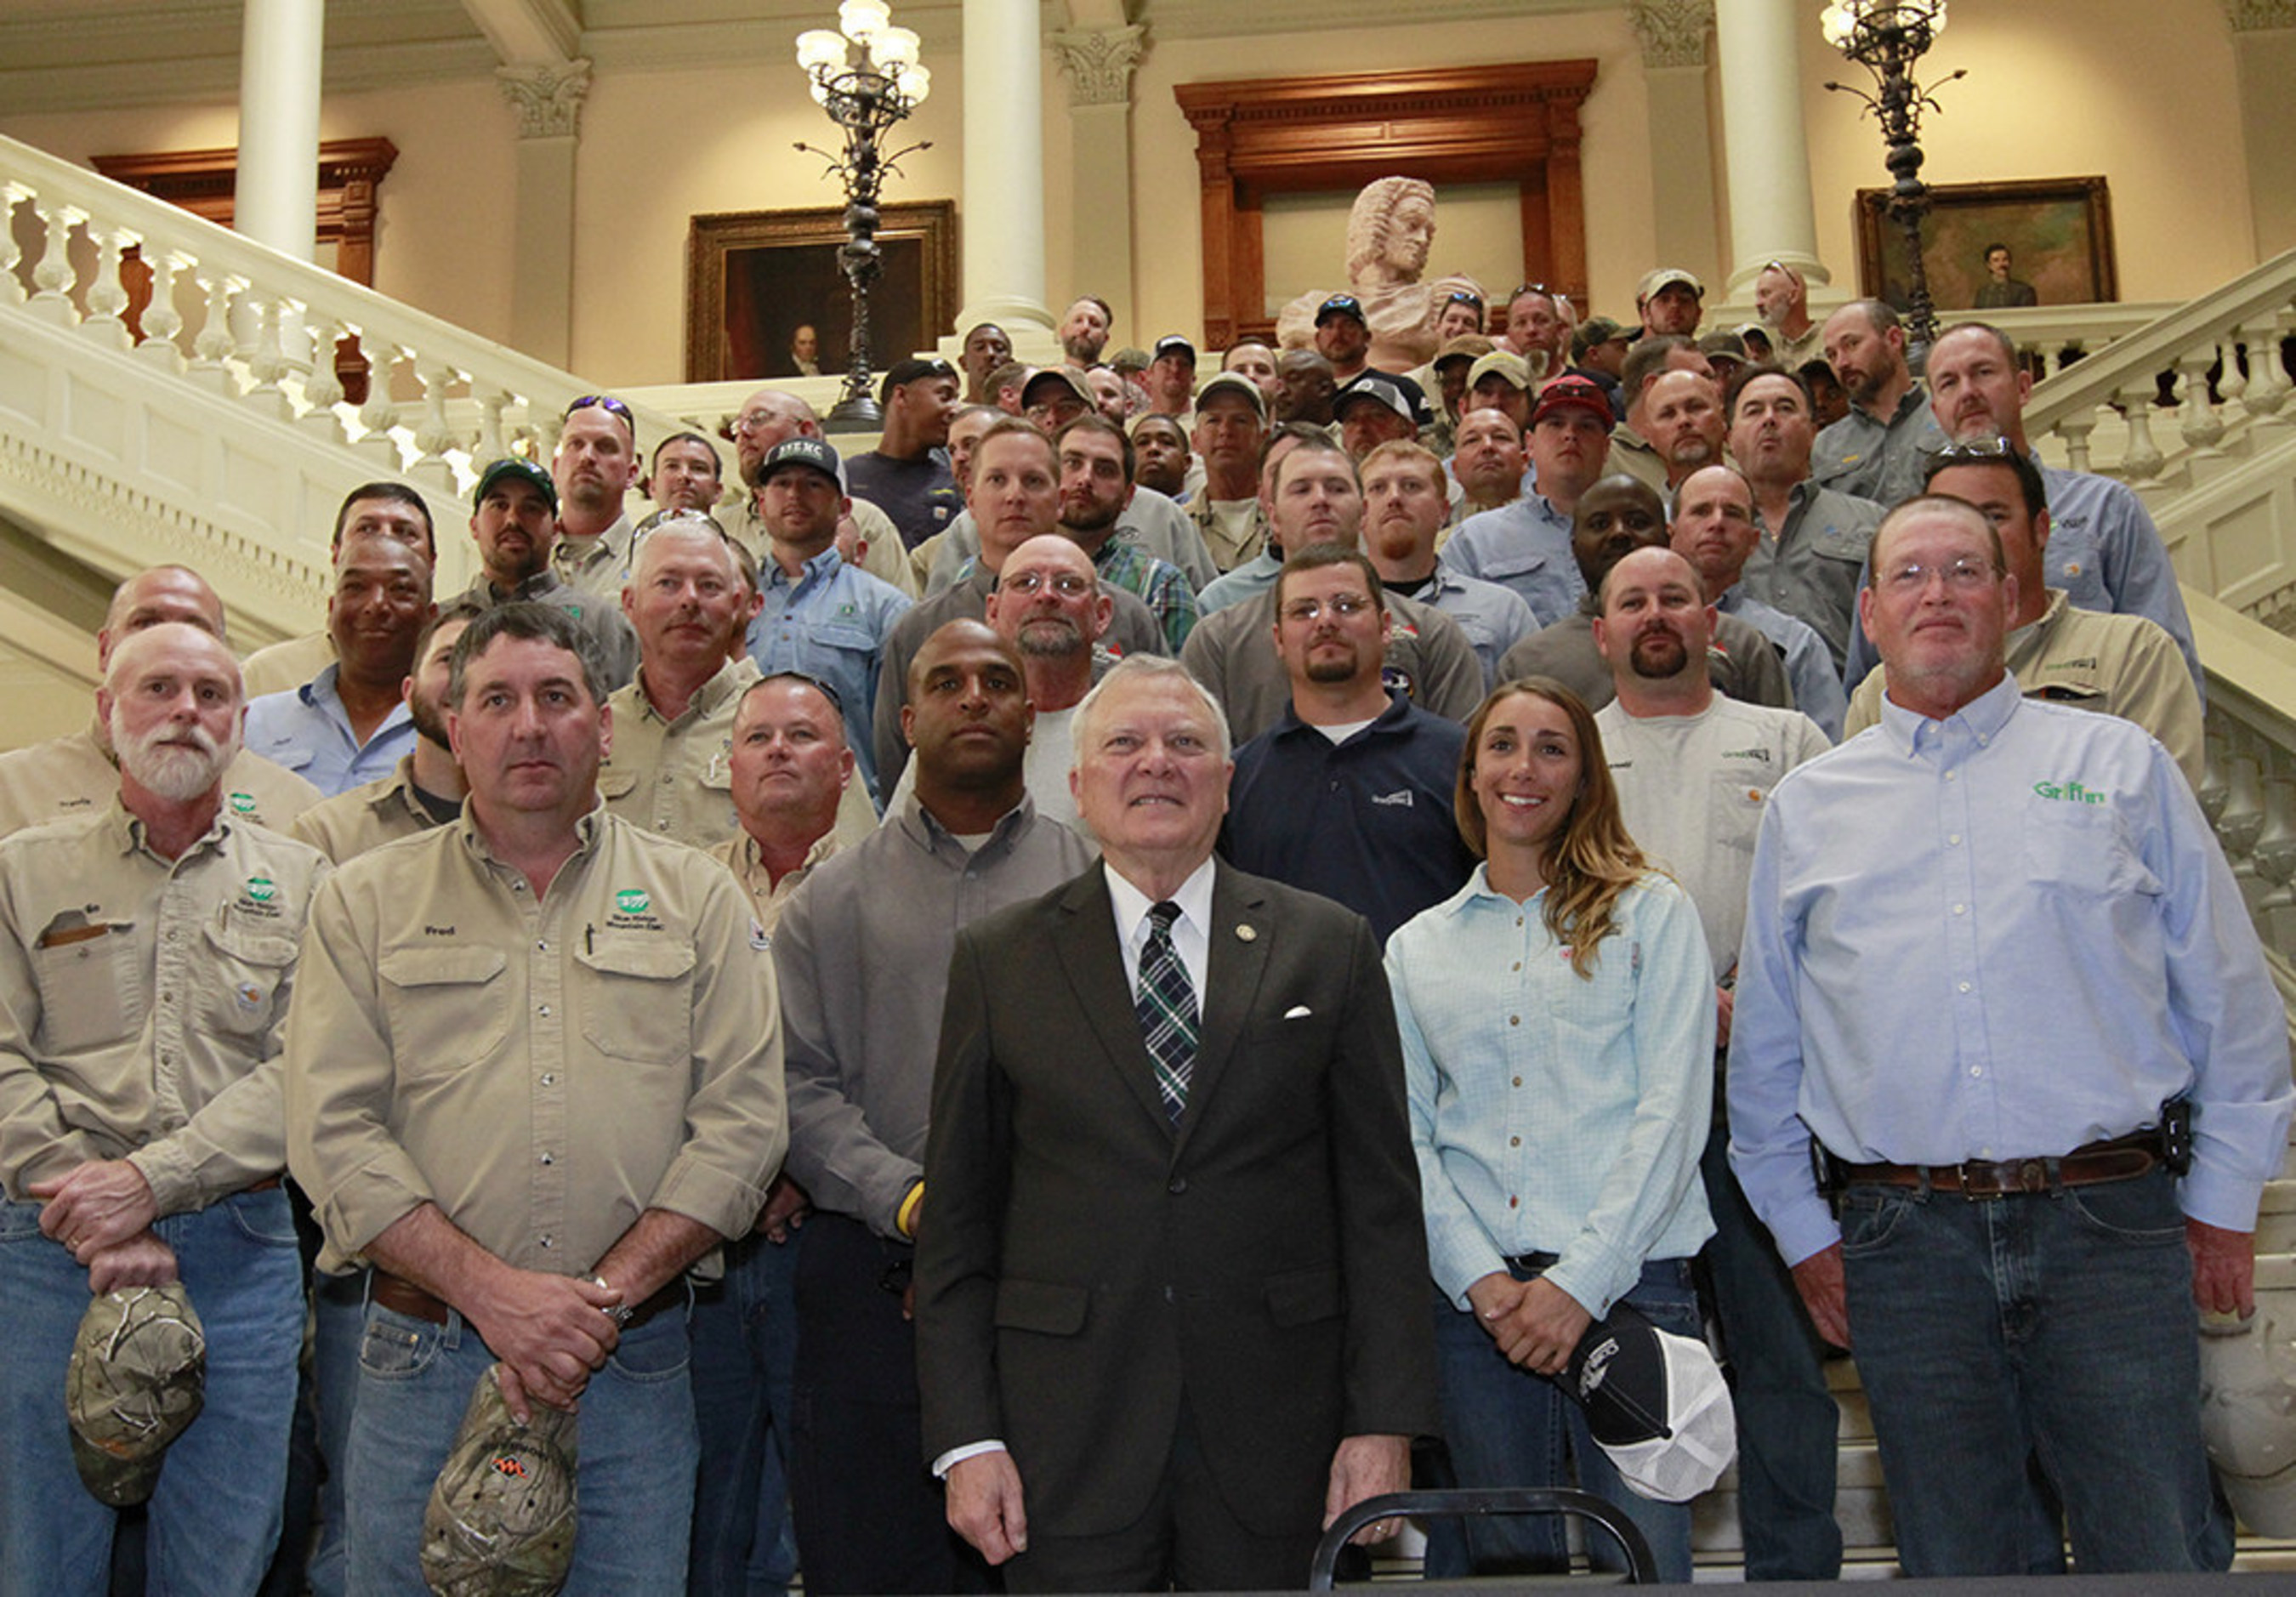 "Georgia Gov. Nathan Deal, electric cooperatives and other utilities gathered at the State Capitol today as members of the Georgia legislature and the public said ""Thank You"" to linemen for their service and sacrifice. Gov. Deal signed House Bill 767 which requires any motorist approaching utility linemen at an active work site to change lanes or reduce their speed to a reasonable and proper speed below the posted speed limit. Violators could be fined up to $250 per incident."